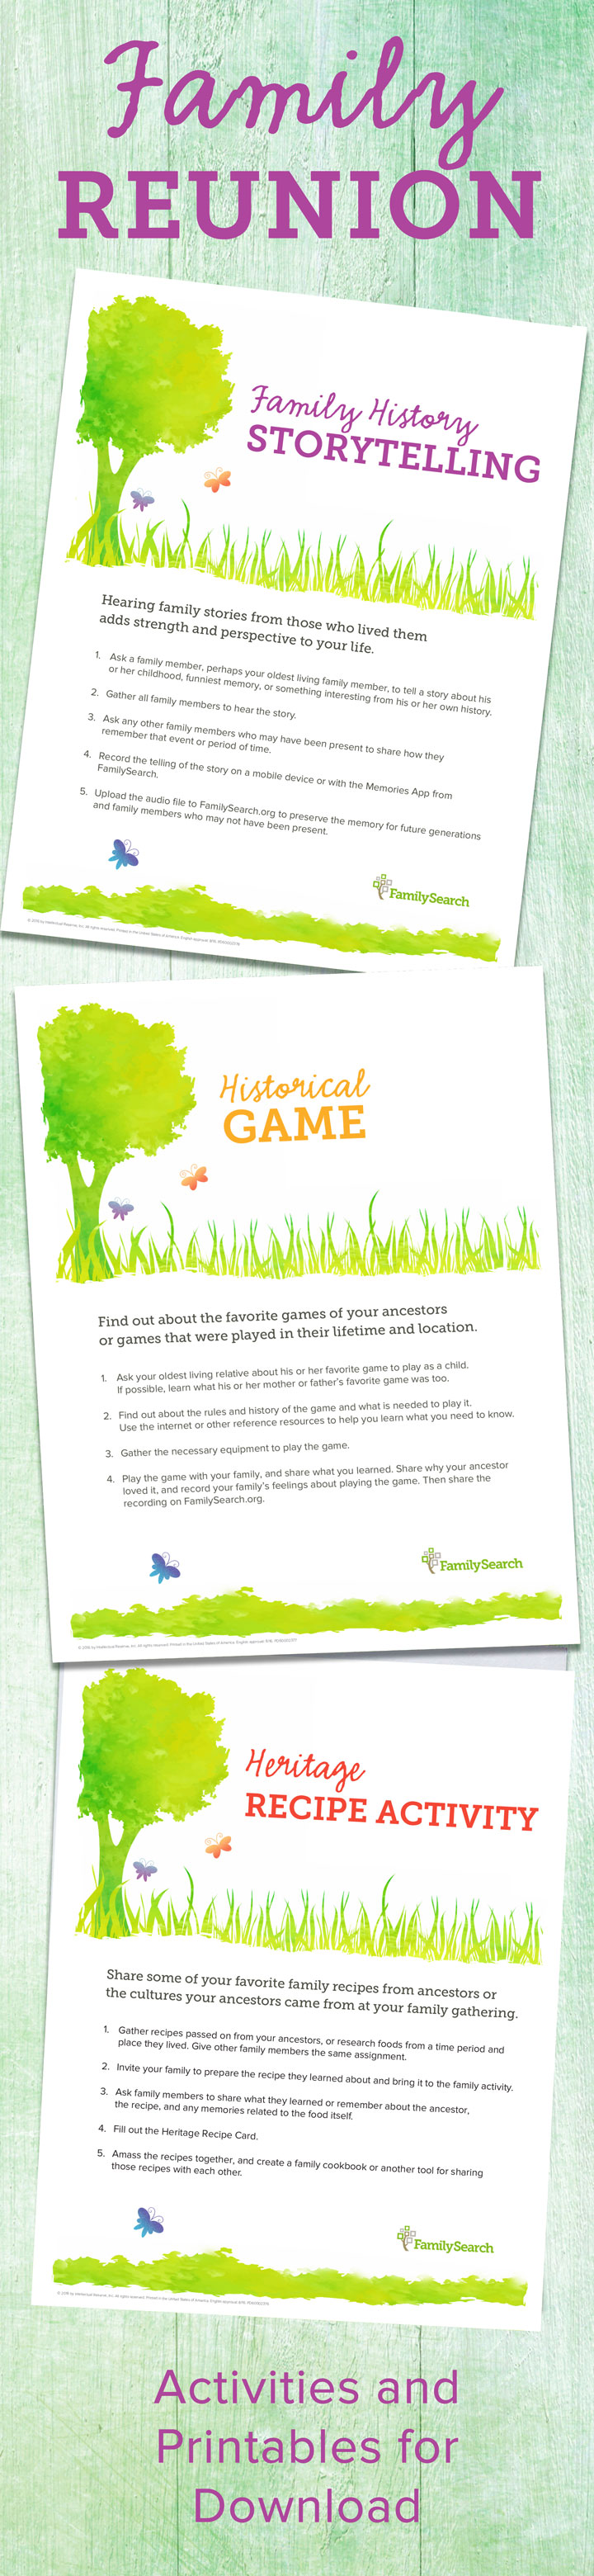 Family gathering activity printables infographic